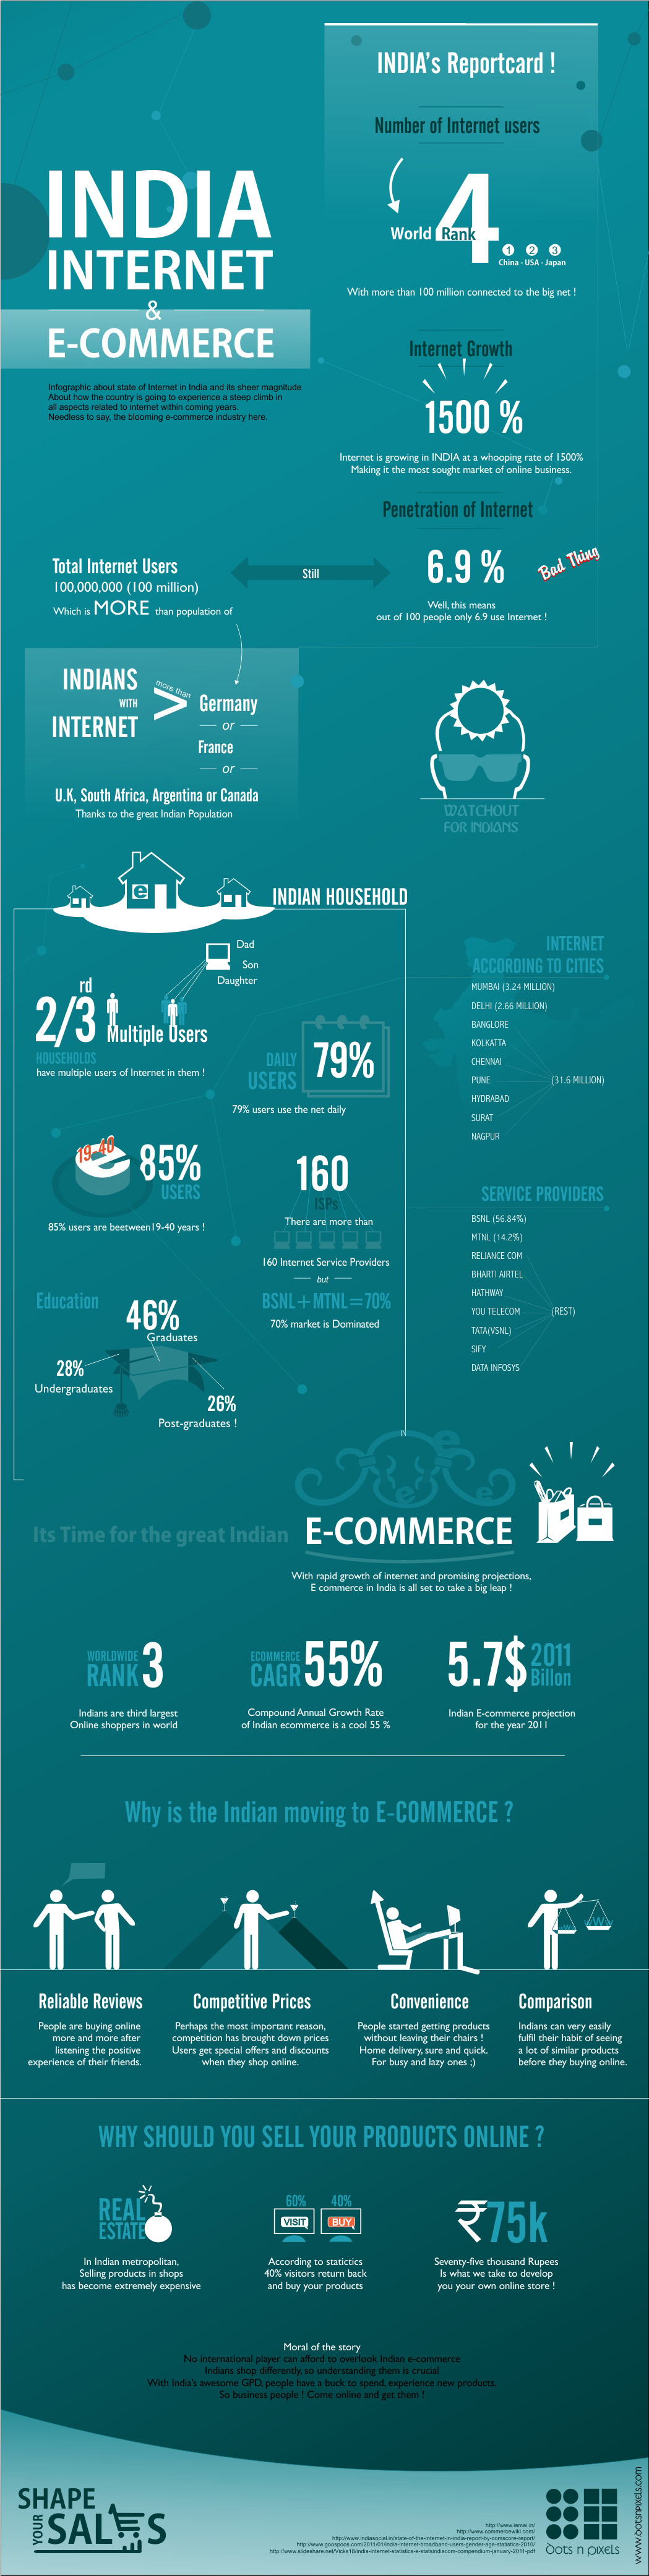 India, Internet and e-commerce